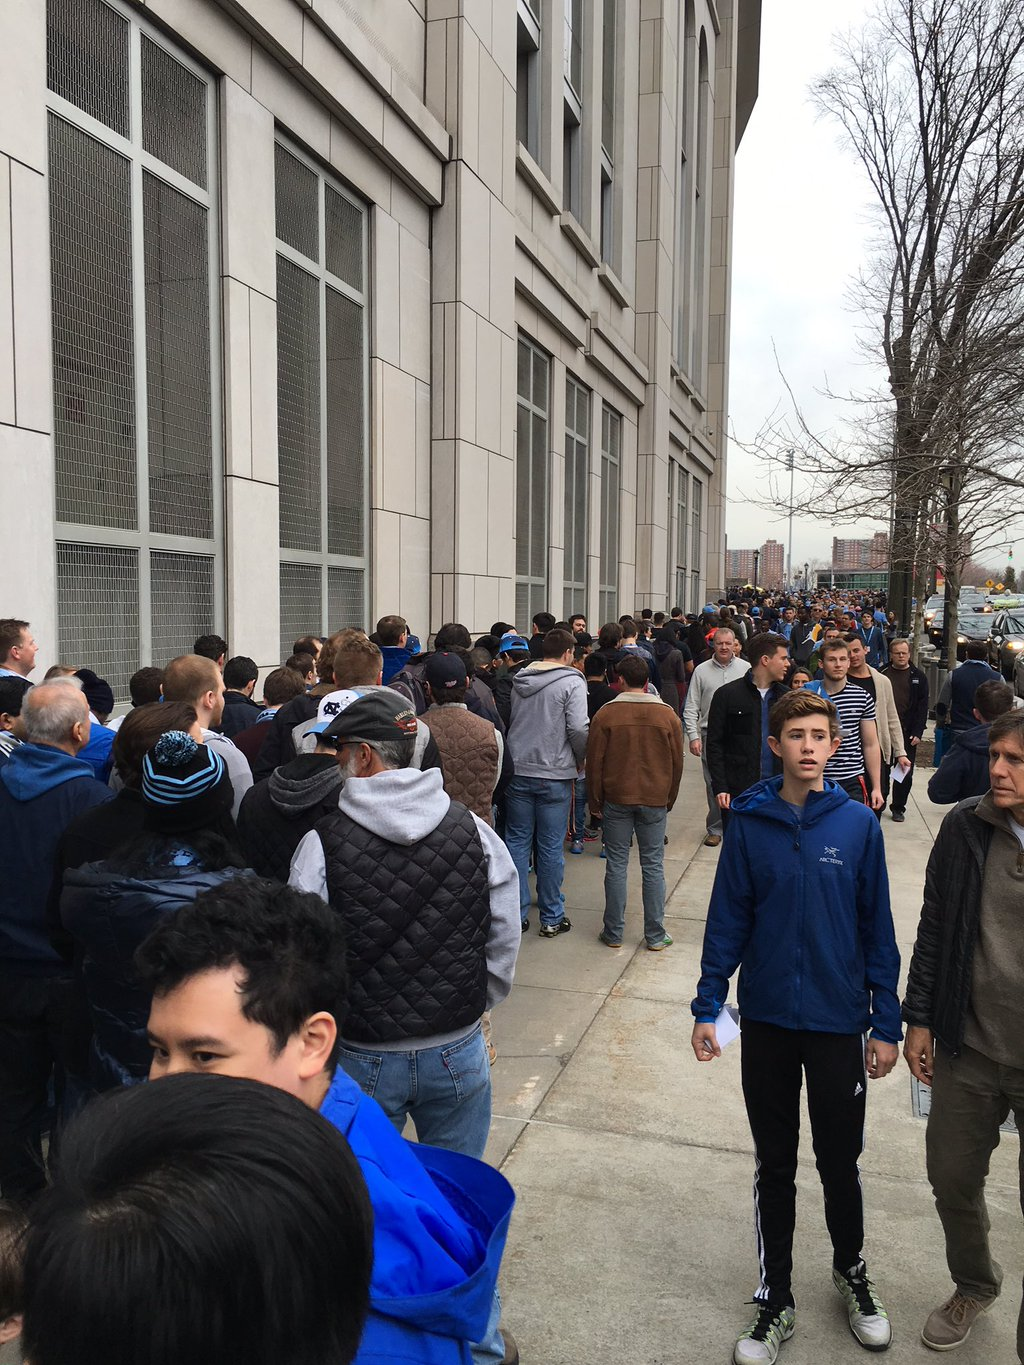 The line for NYCFC fans as of Tuesday the 15th at 1:30 pm waiting to attend the game last Sunday.